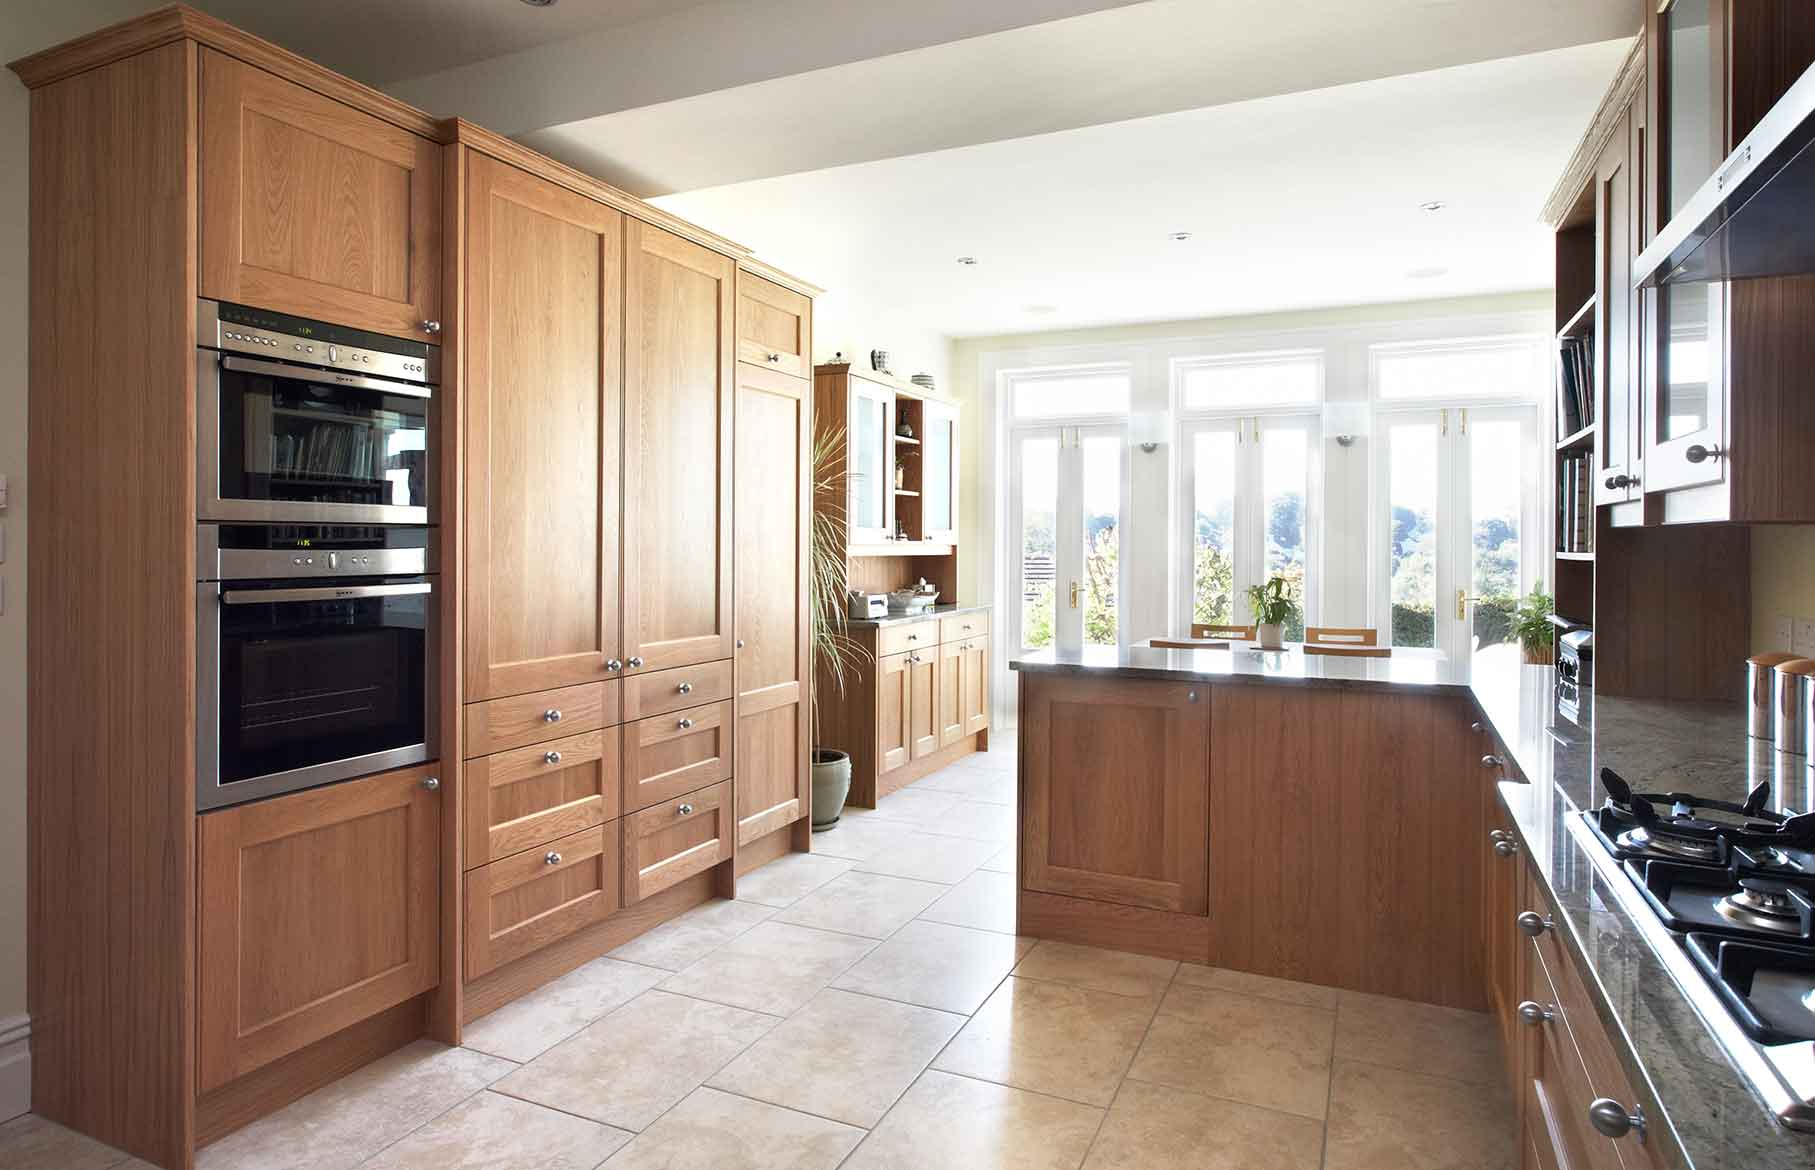 Stately kitchen - Grandeur by the bucketload